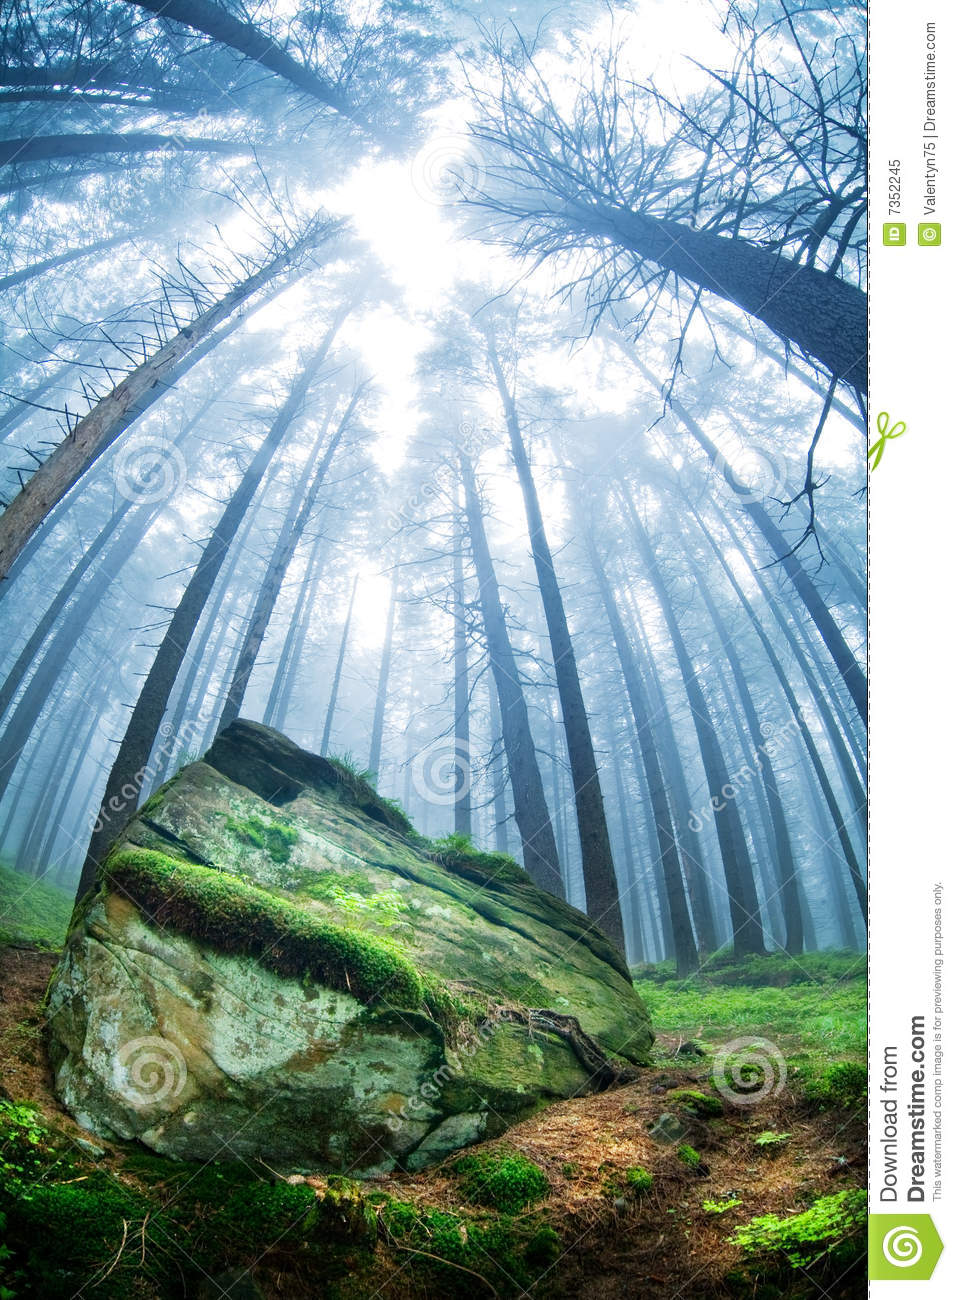 Nature Images 2mb: Forest Landscape Stock Image. Image Of Trees, Green, Stone